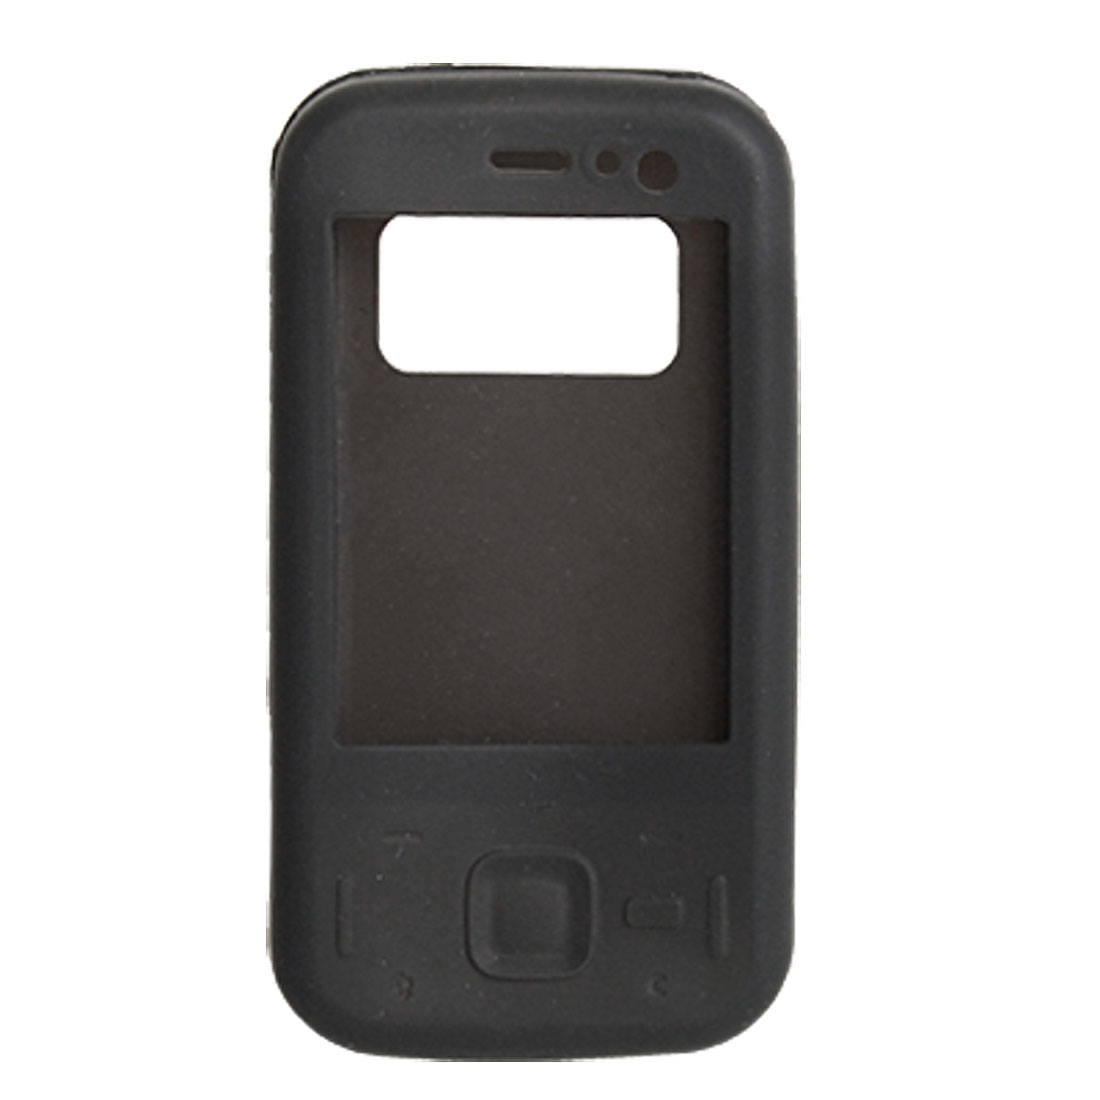 Black Cool Silicone Case Protector for Nokia N85